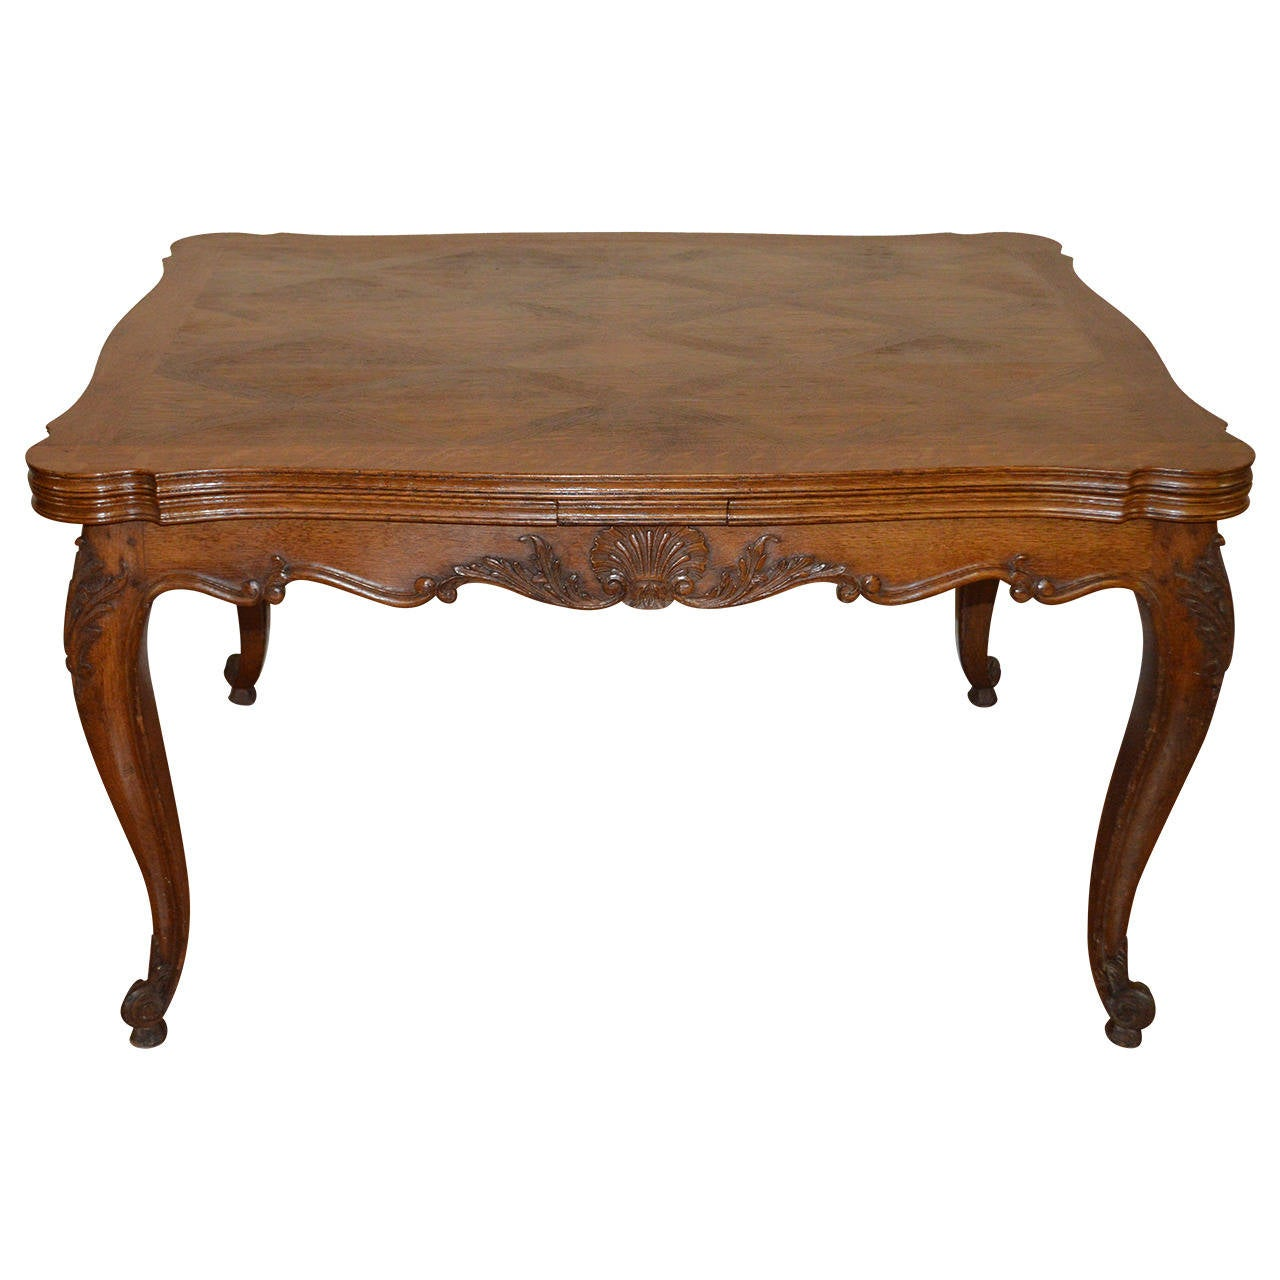 Louis xv style dining table from provence at 1stdibs - Table louis xv ...